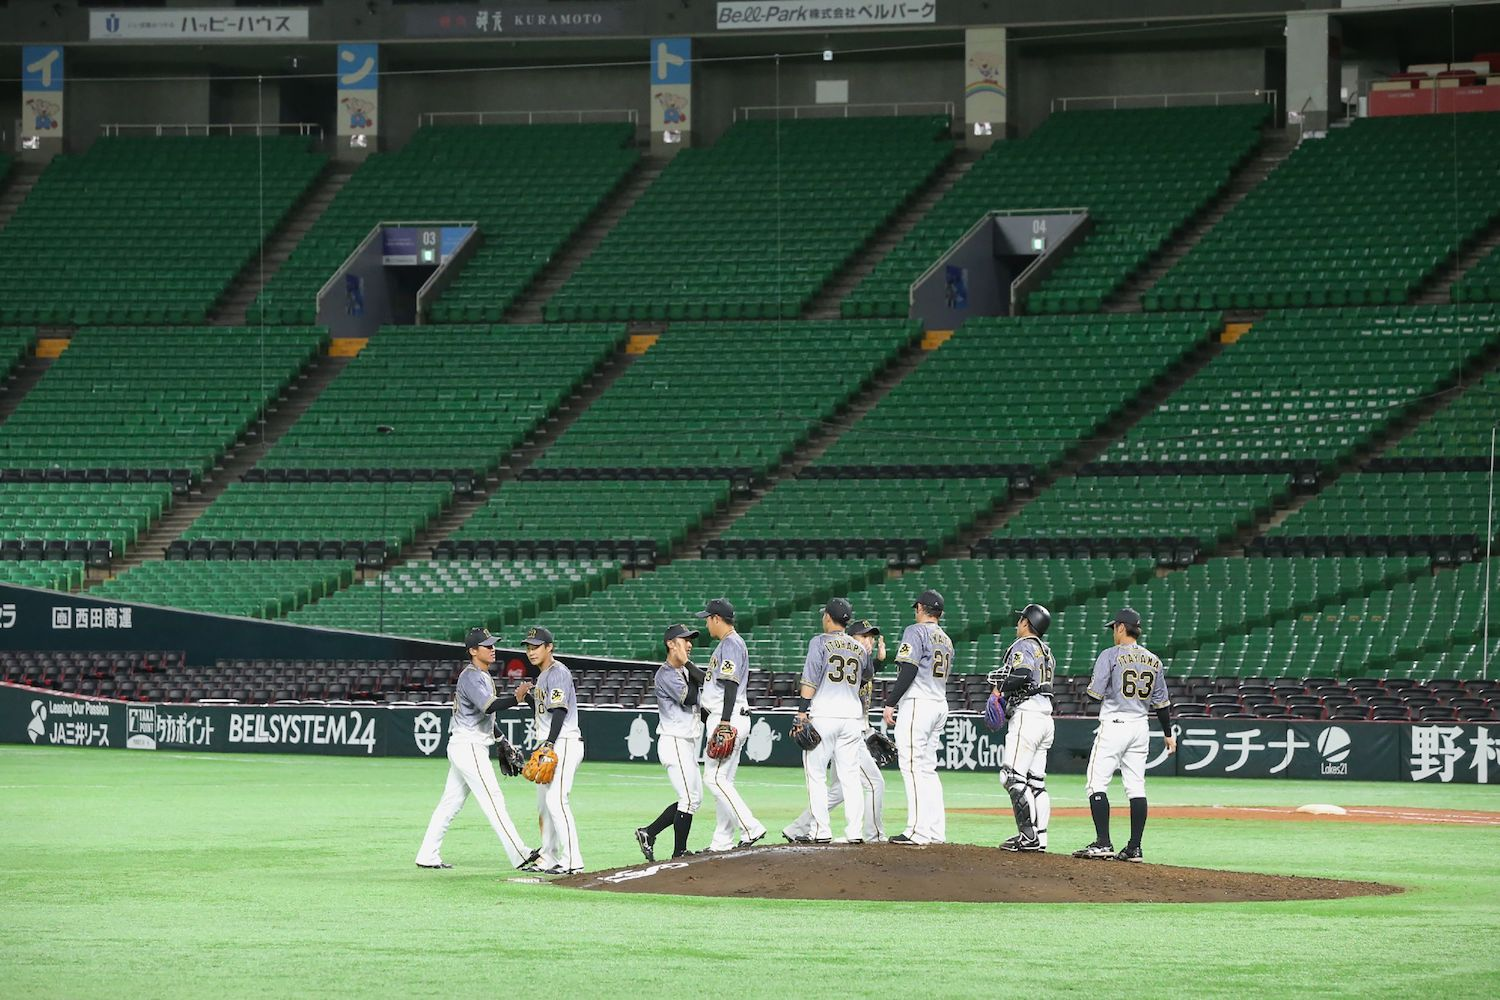 Hanshin Tigers players celebrate their win over Fukuoka SoftBank Hawks following their pre-season game in an empty stadium in Fukuoka on Saturday. (Jiji Press via AFP)